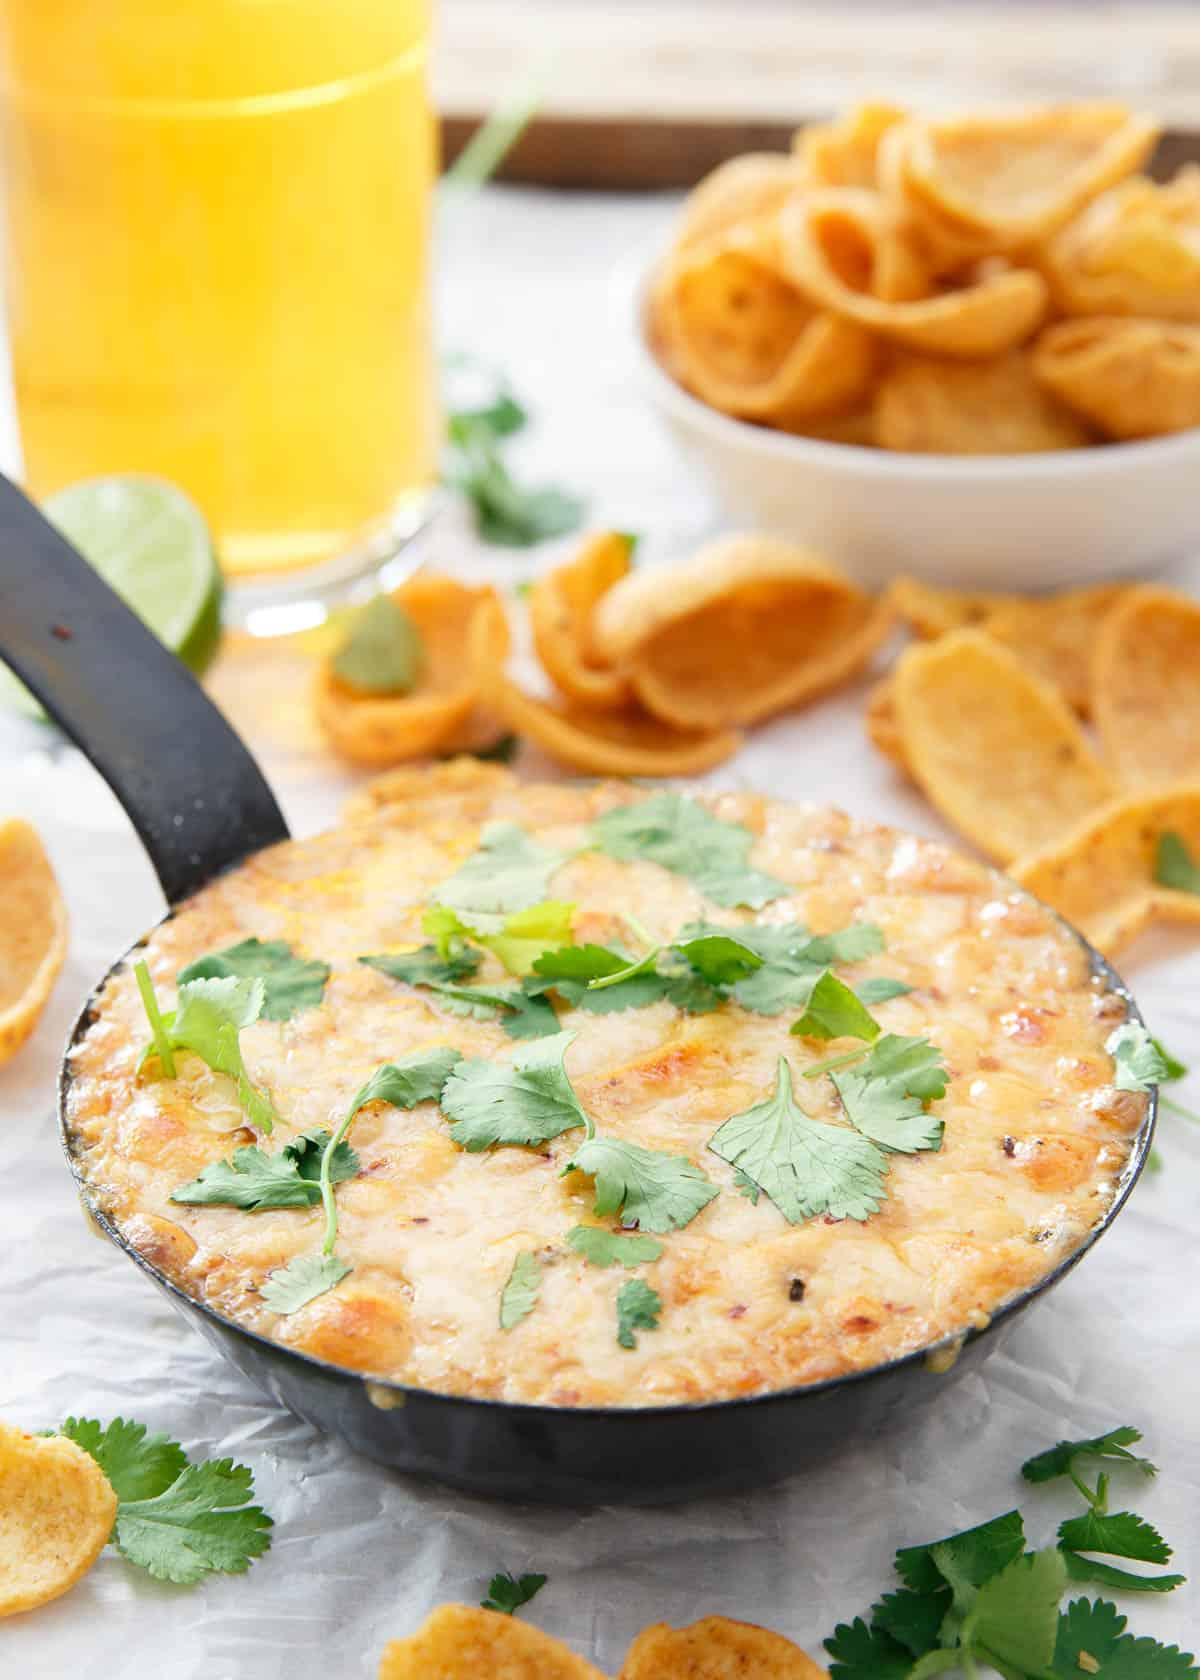 This hummus fundido has a spicy chipotle kick to it. Use chips or even roasted vegetables to dive into this baked cheesy dip.